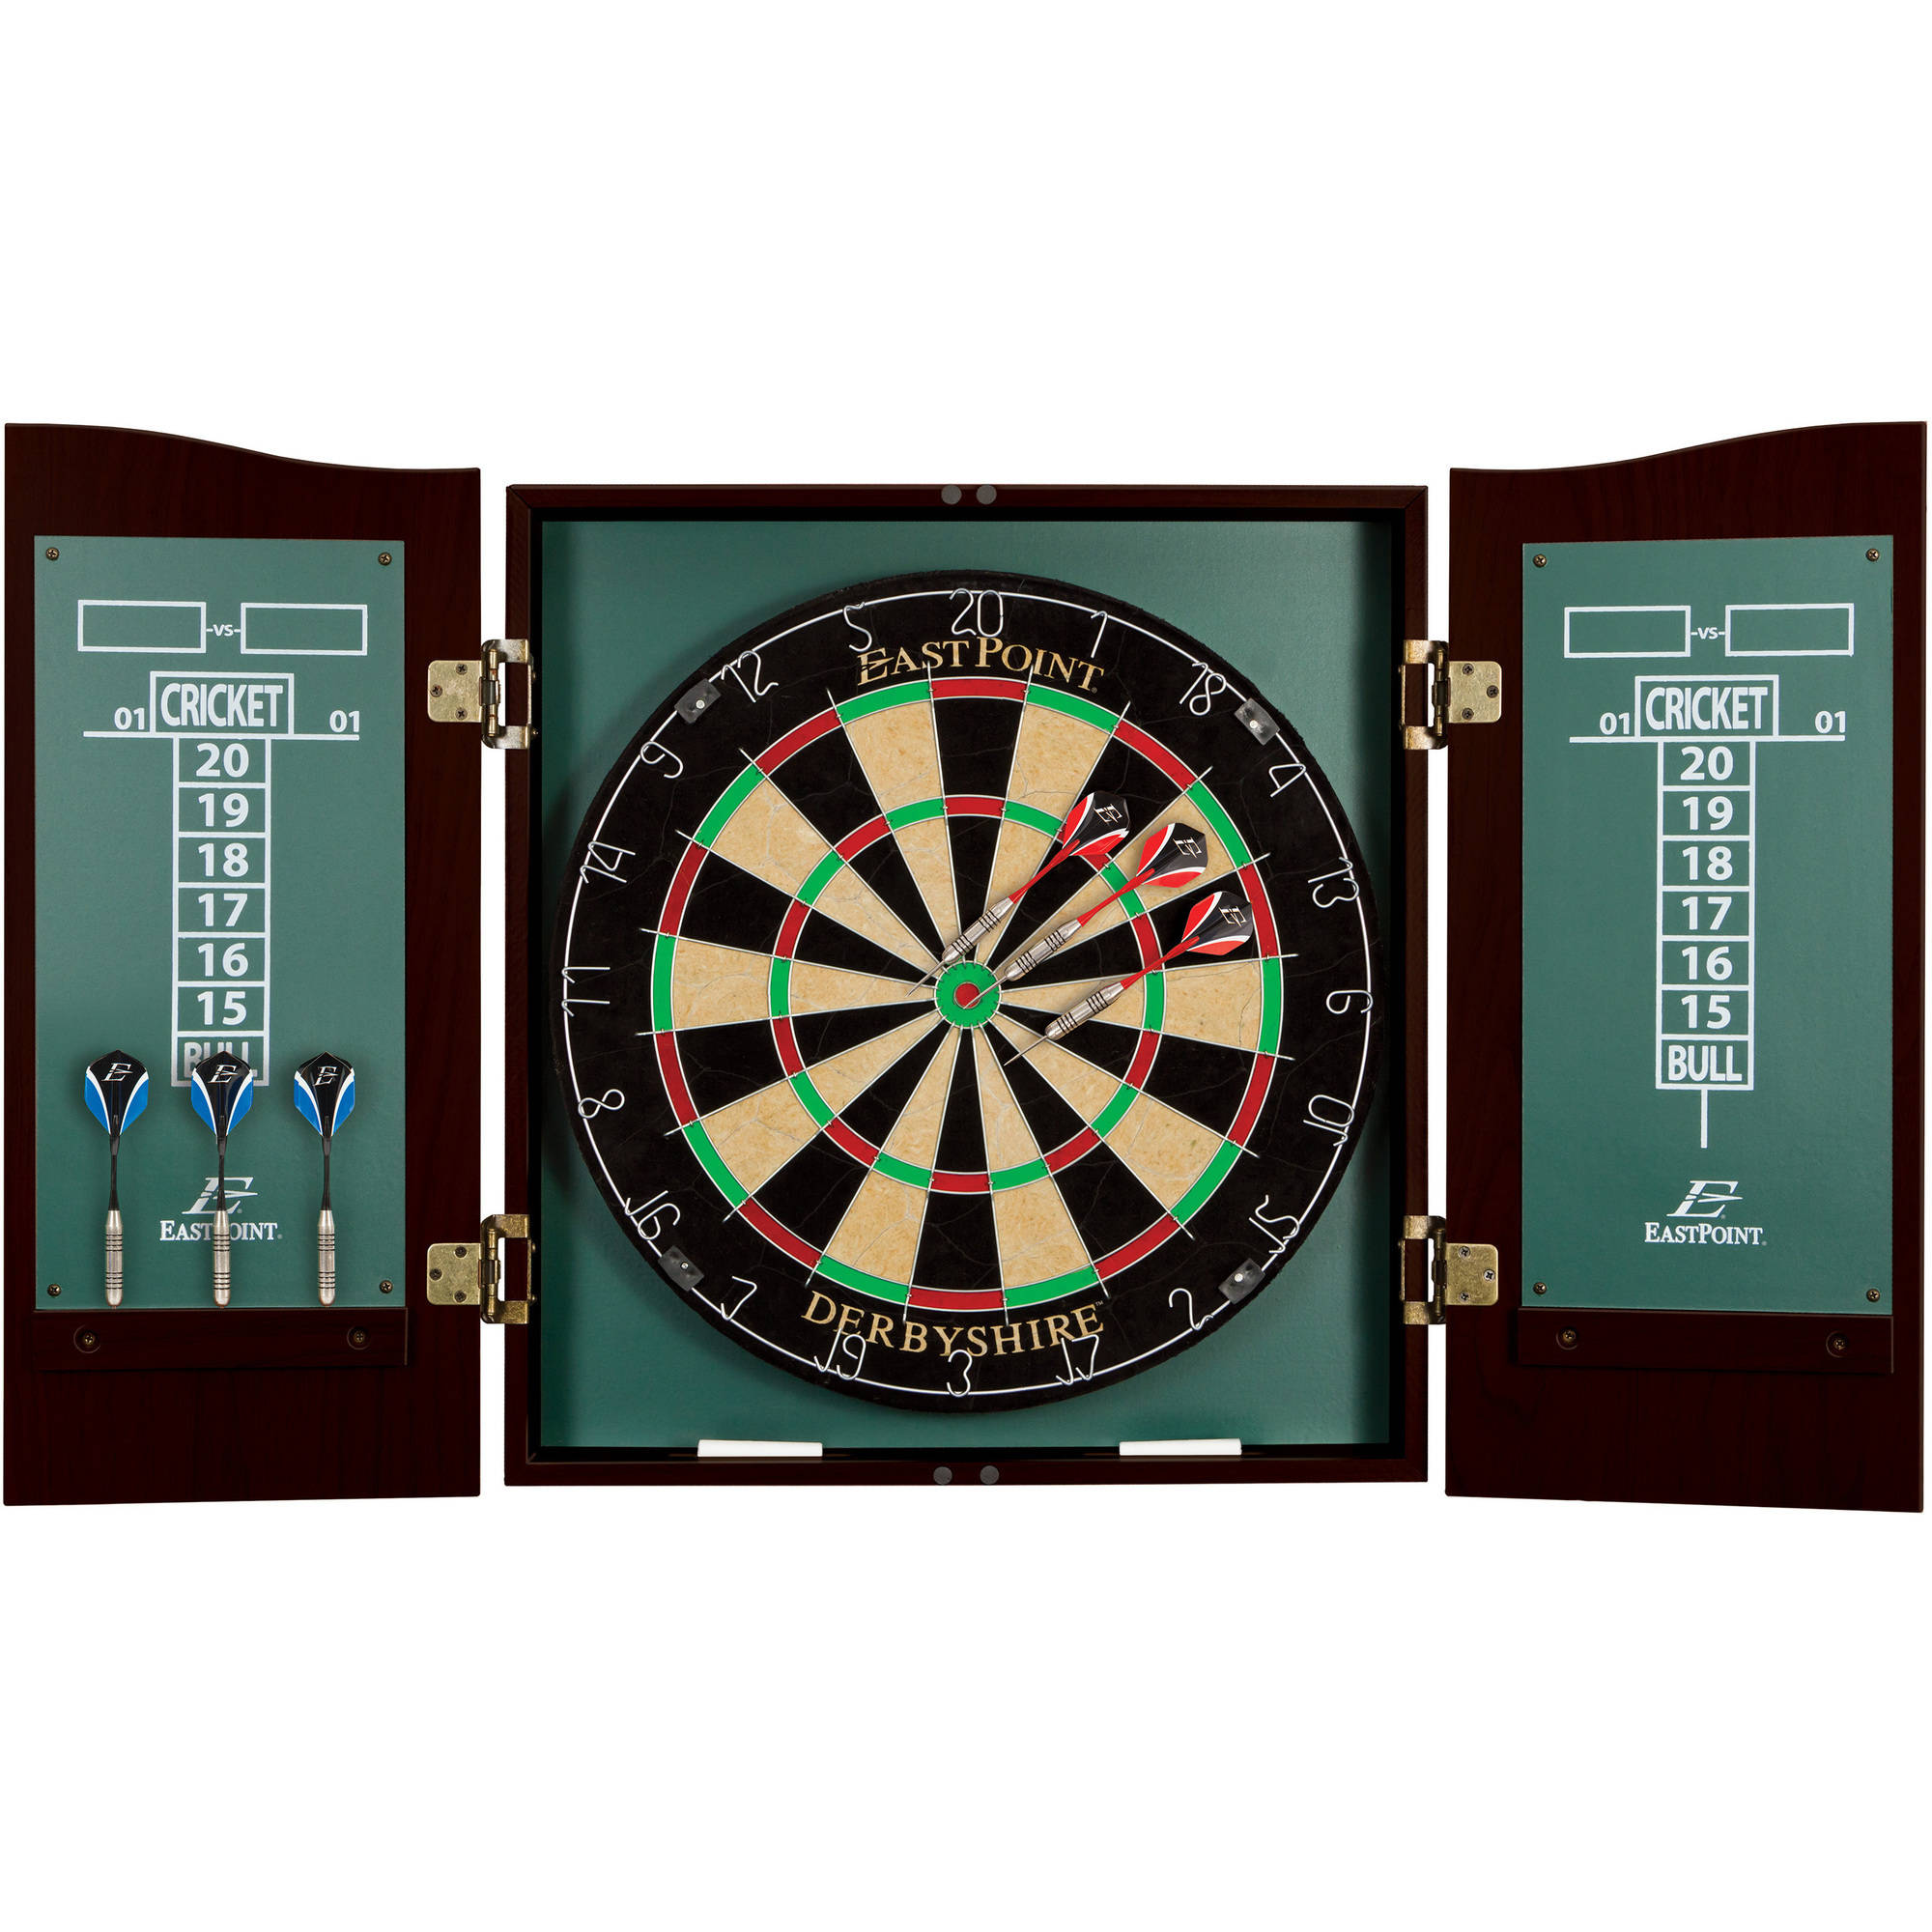 EastPoint Sports Derbyshire Dartboard & Cabinet Set